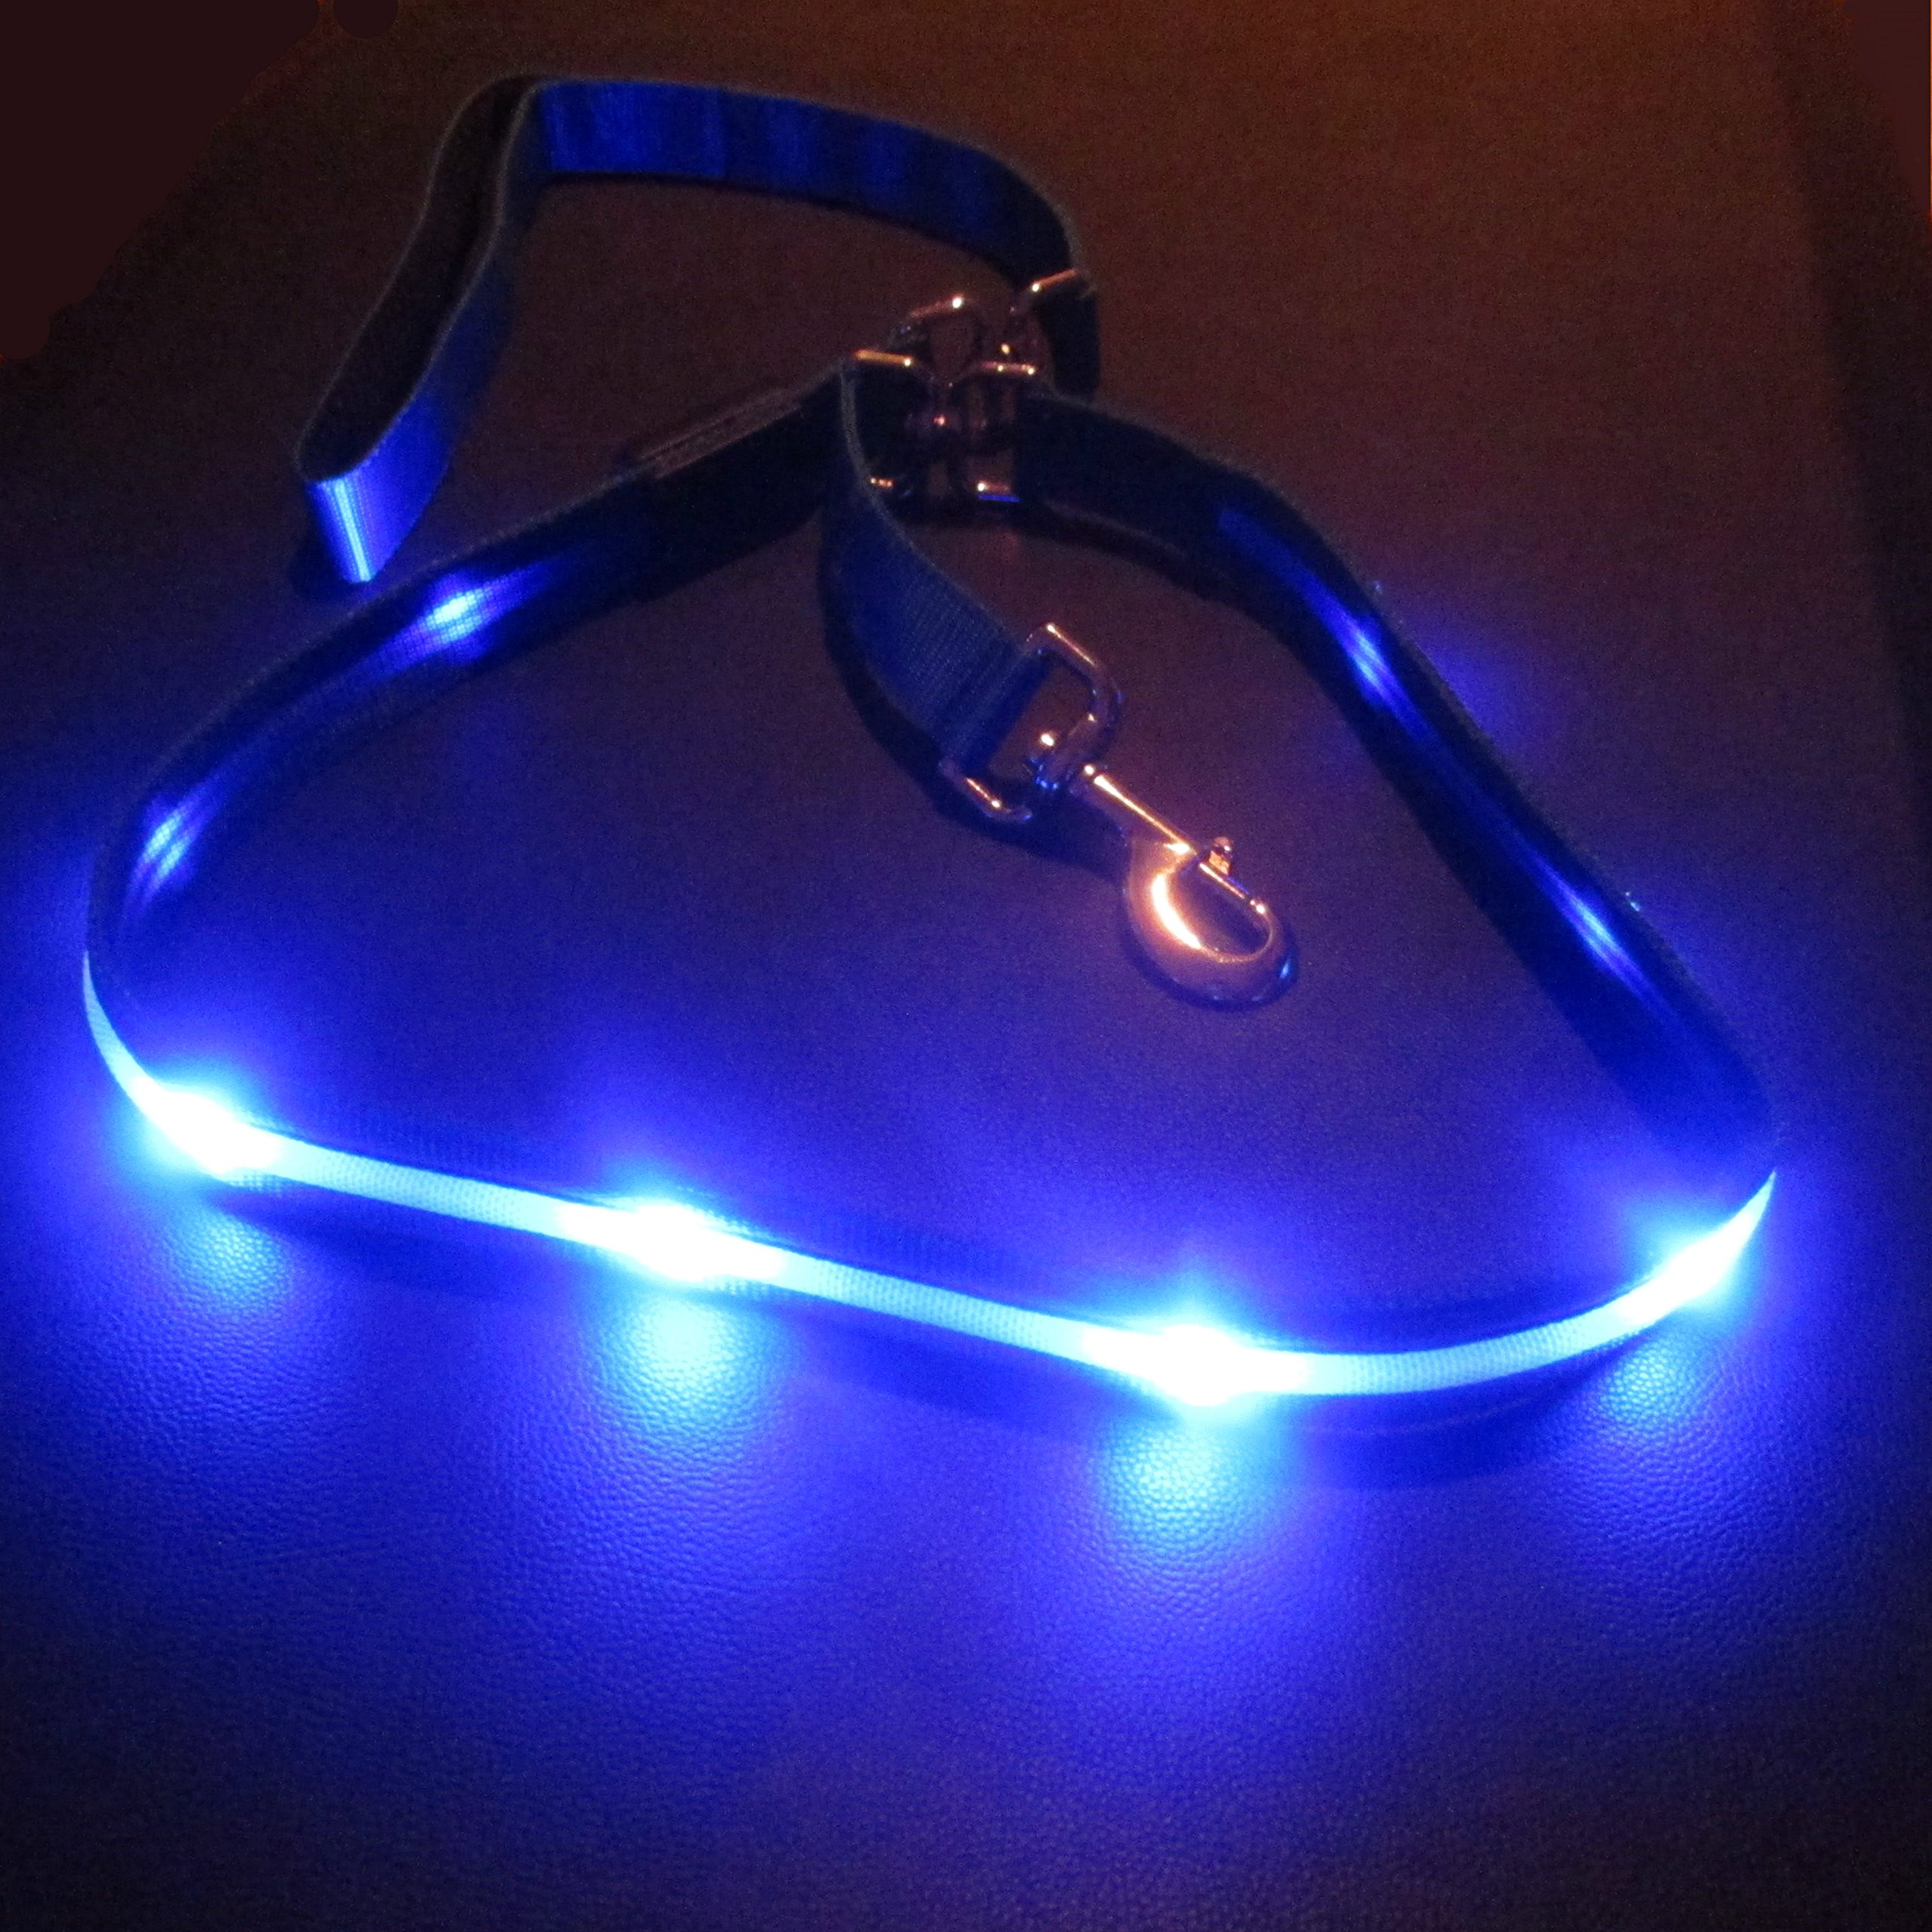 Blazin' Safety LED Dog Leash - USB Rechargeable Flashing Light, 6 Ft, Water Resistant - Avoid Danger - Blue by Blazin' Bison